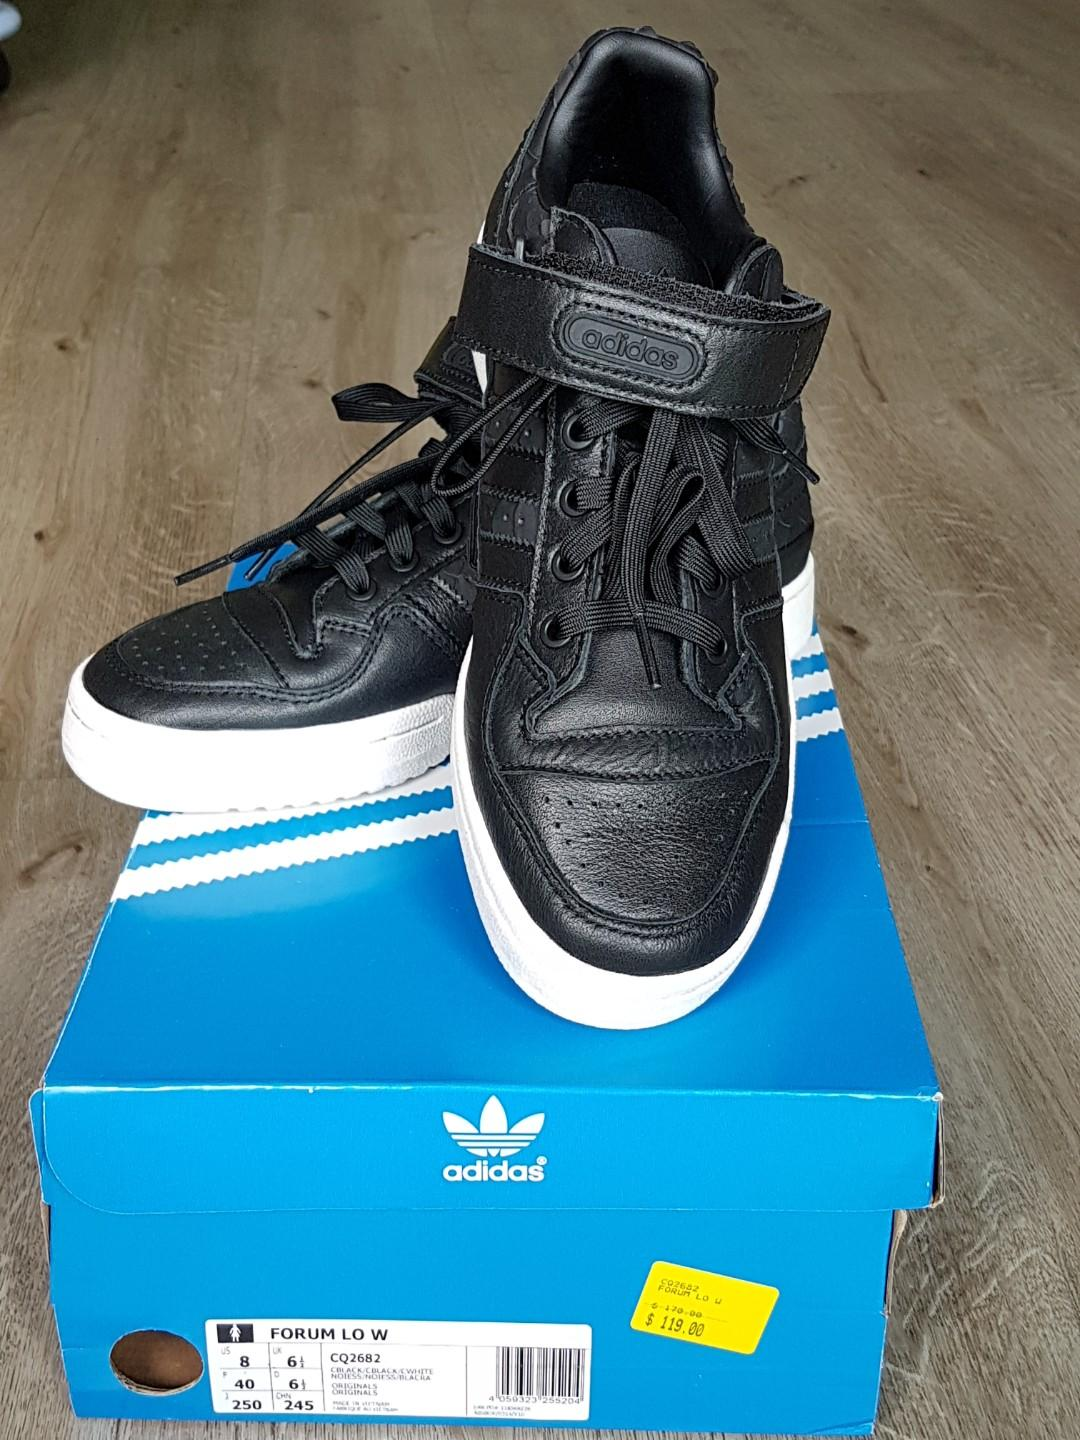 Adidas Forum Lo W Sneakers - Brand New